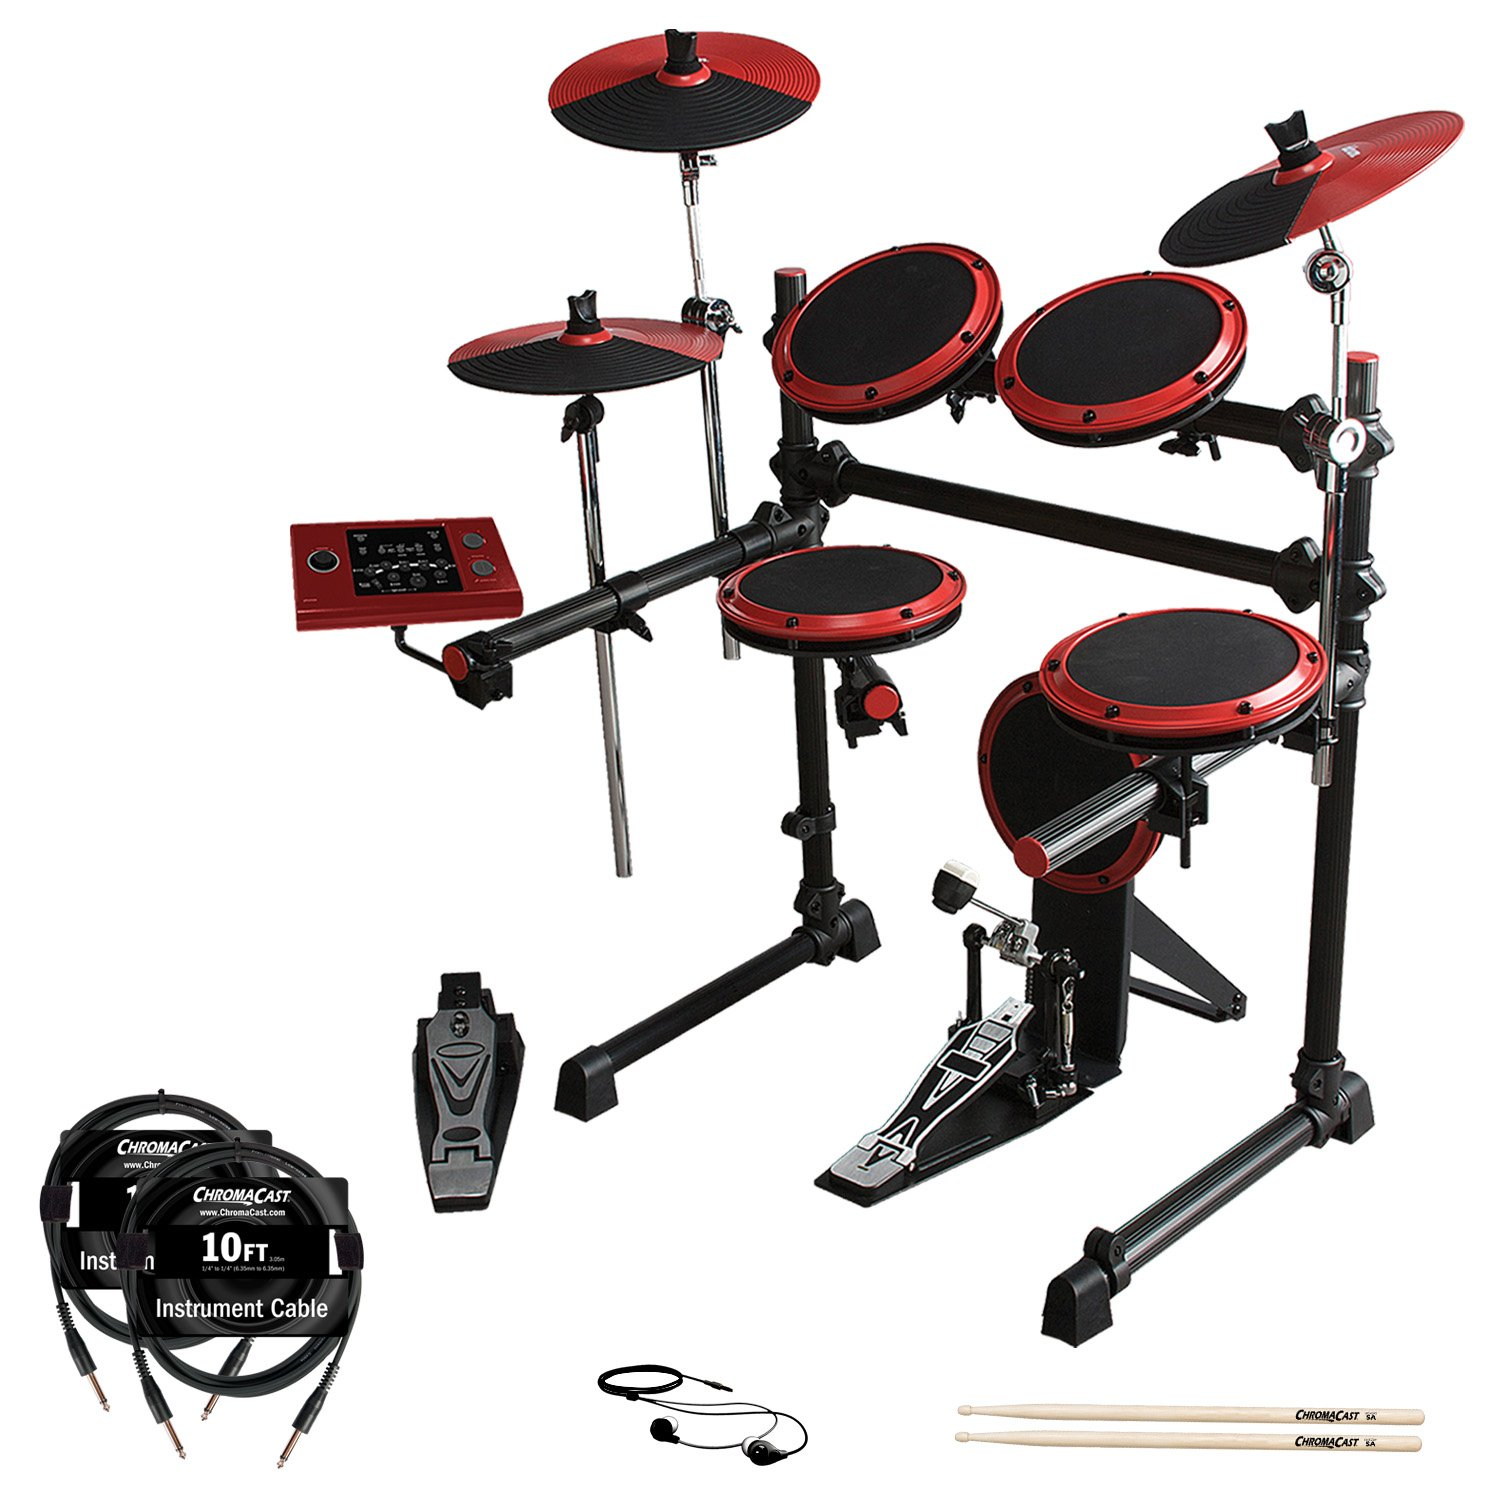 ddrum DD1 Complete Electronic Drum Kit with ChromaCast 10ft Cables, Earbuds & GoDpsMusic 5A Drumsticks